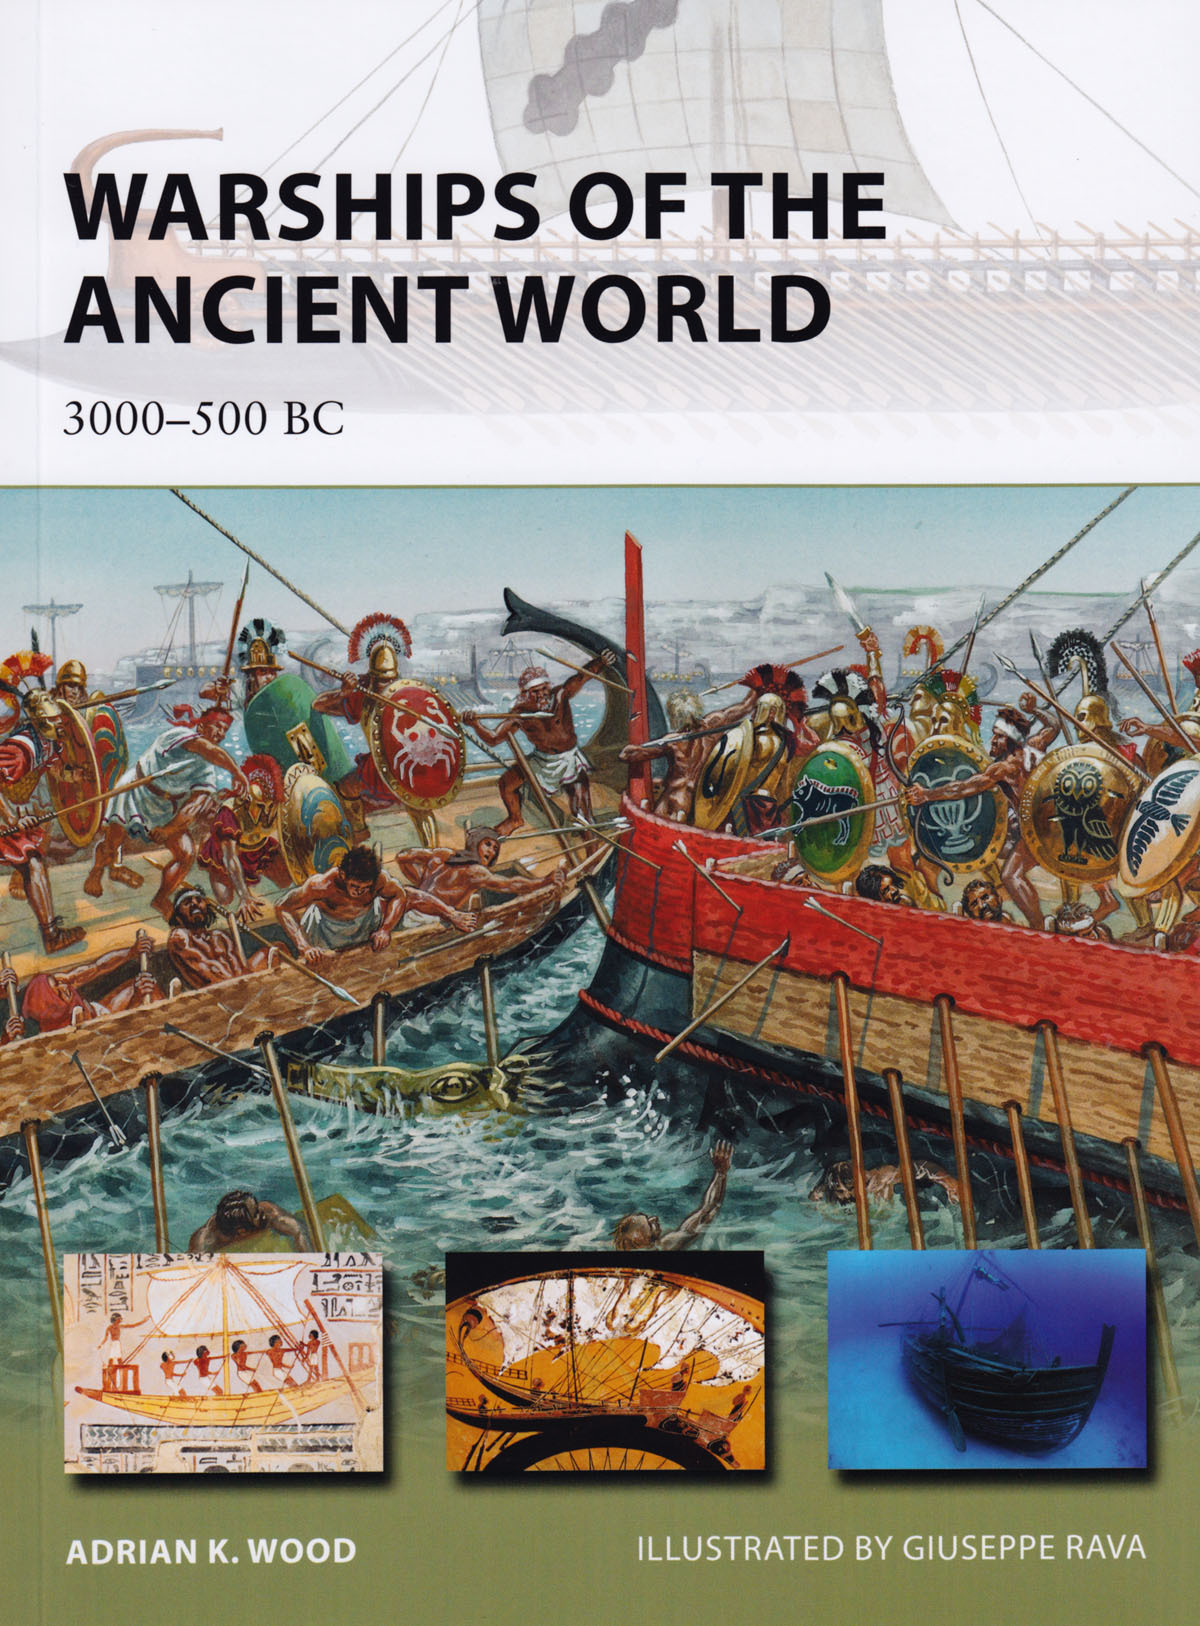 BOOK REVIEW – Warships of the Ancient World, 3000 – 500 BC  Written by Adrian K. Wood and Illustrated by Giuseppe Rava.  Osprey Publishing, Ltd., Long Island City, NY. (2012) Reviewed by John R. Satterfield, DBA. Writing about human activities in the Bronze and early Iron Ages is a daunting task. Evidence from these eras is fragmentary at best, like a jigsaw puzzle with far more pieces missing than available. Focused examinations on specific topics must rely on even sketchier resources. Earliest examples of writing or illustrations that survive are typically clay tablets or inscriptions on monuments or buildings, and nearly all of these artifacts are remnants. (read the full review)